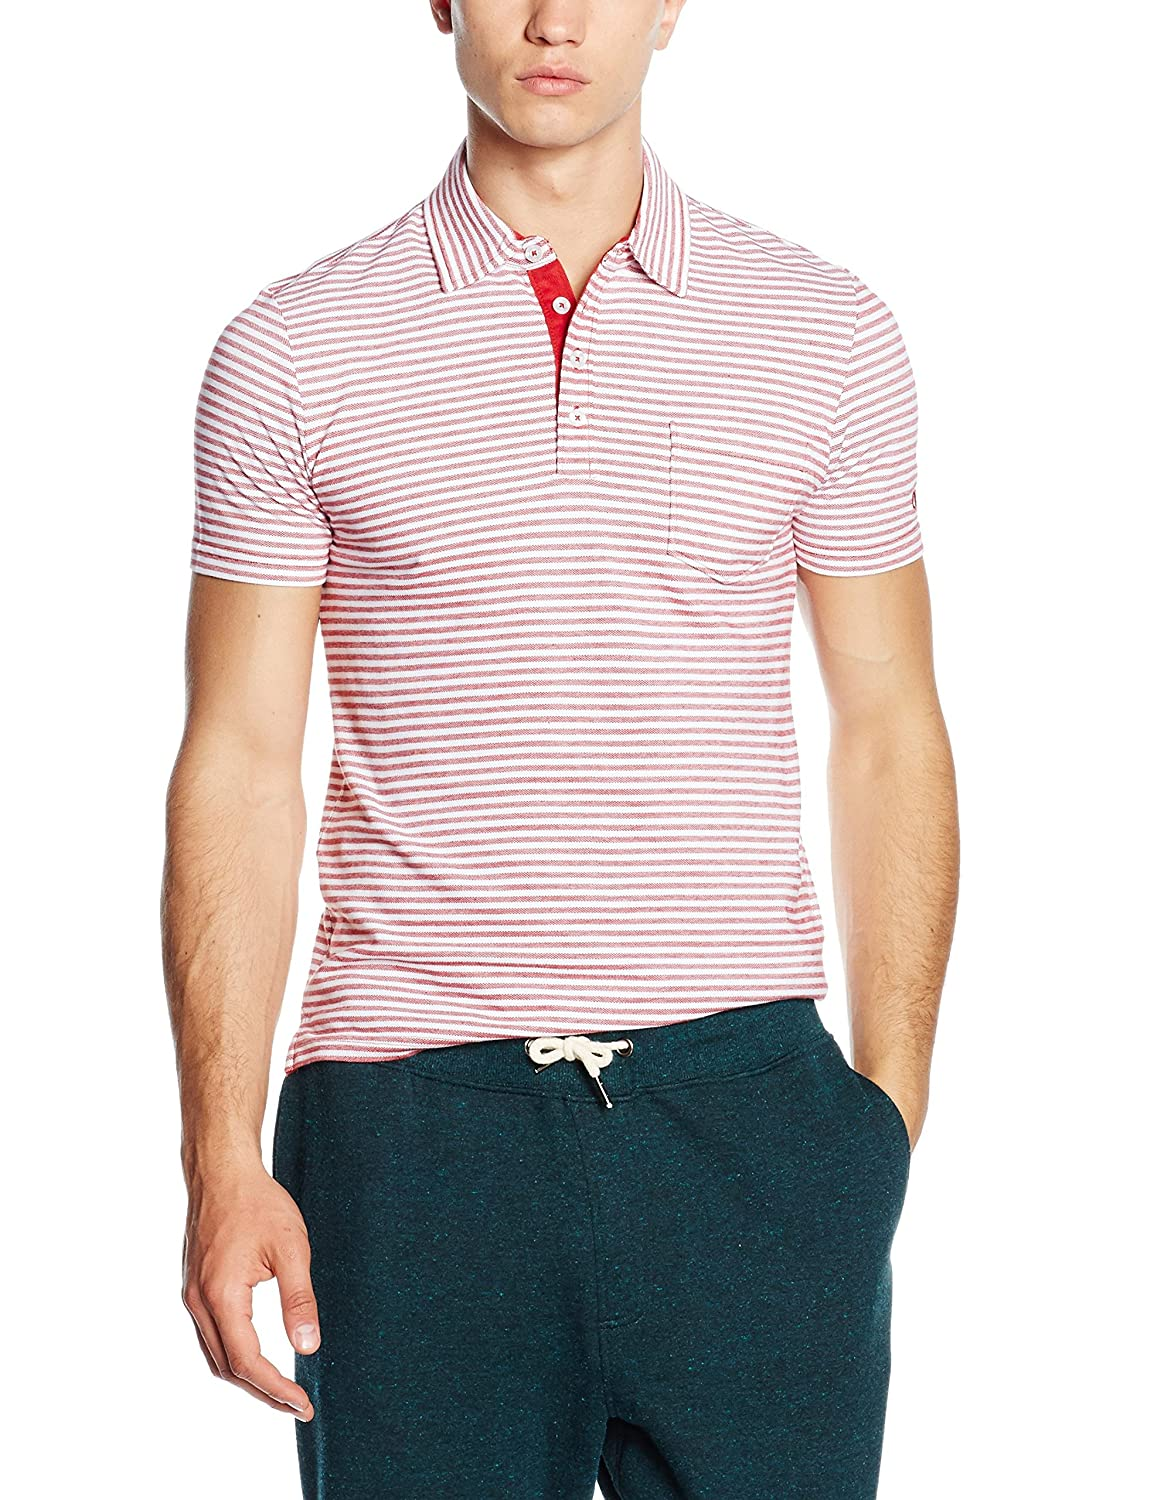 Champion 209599_S16 - Polo para Hombre (Talla XXL), Color Verde ...